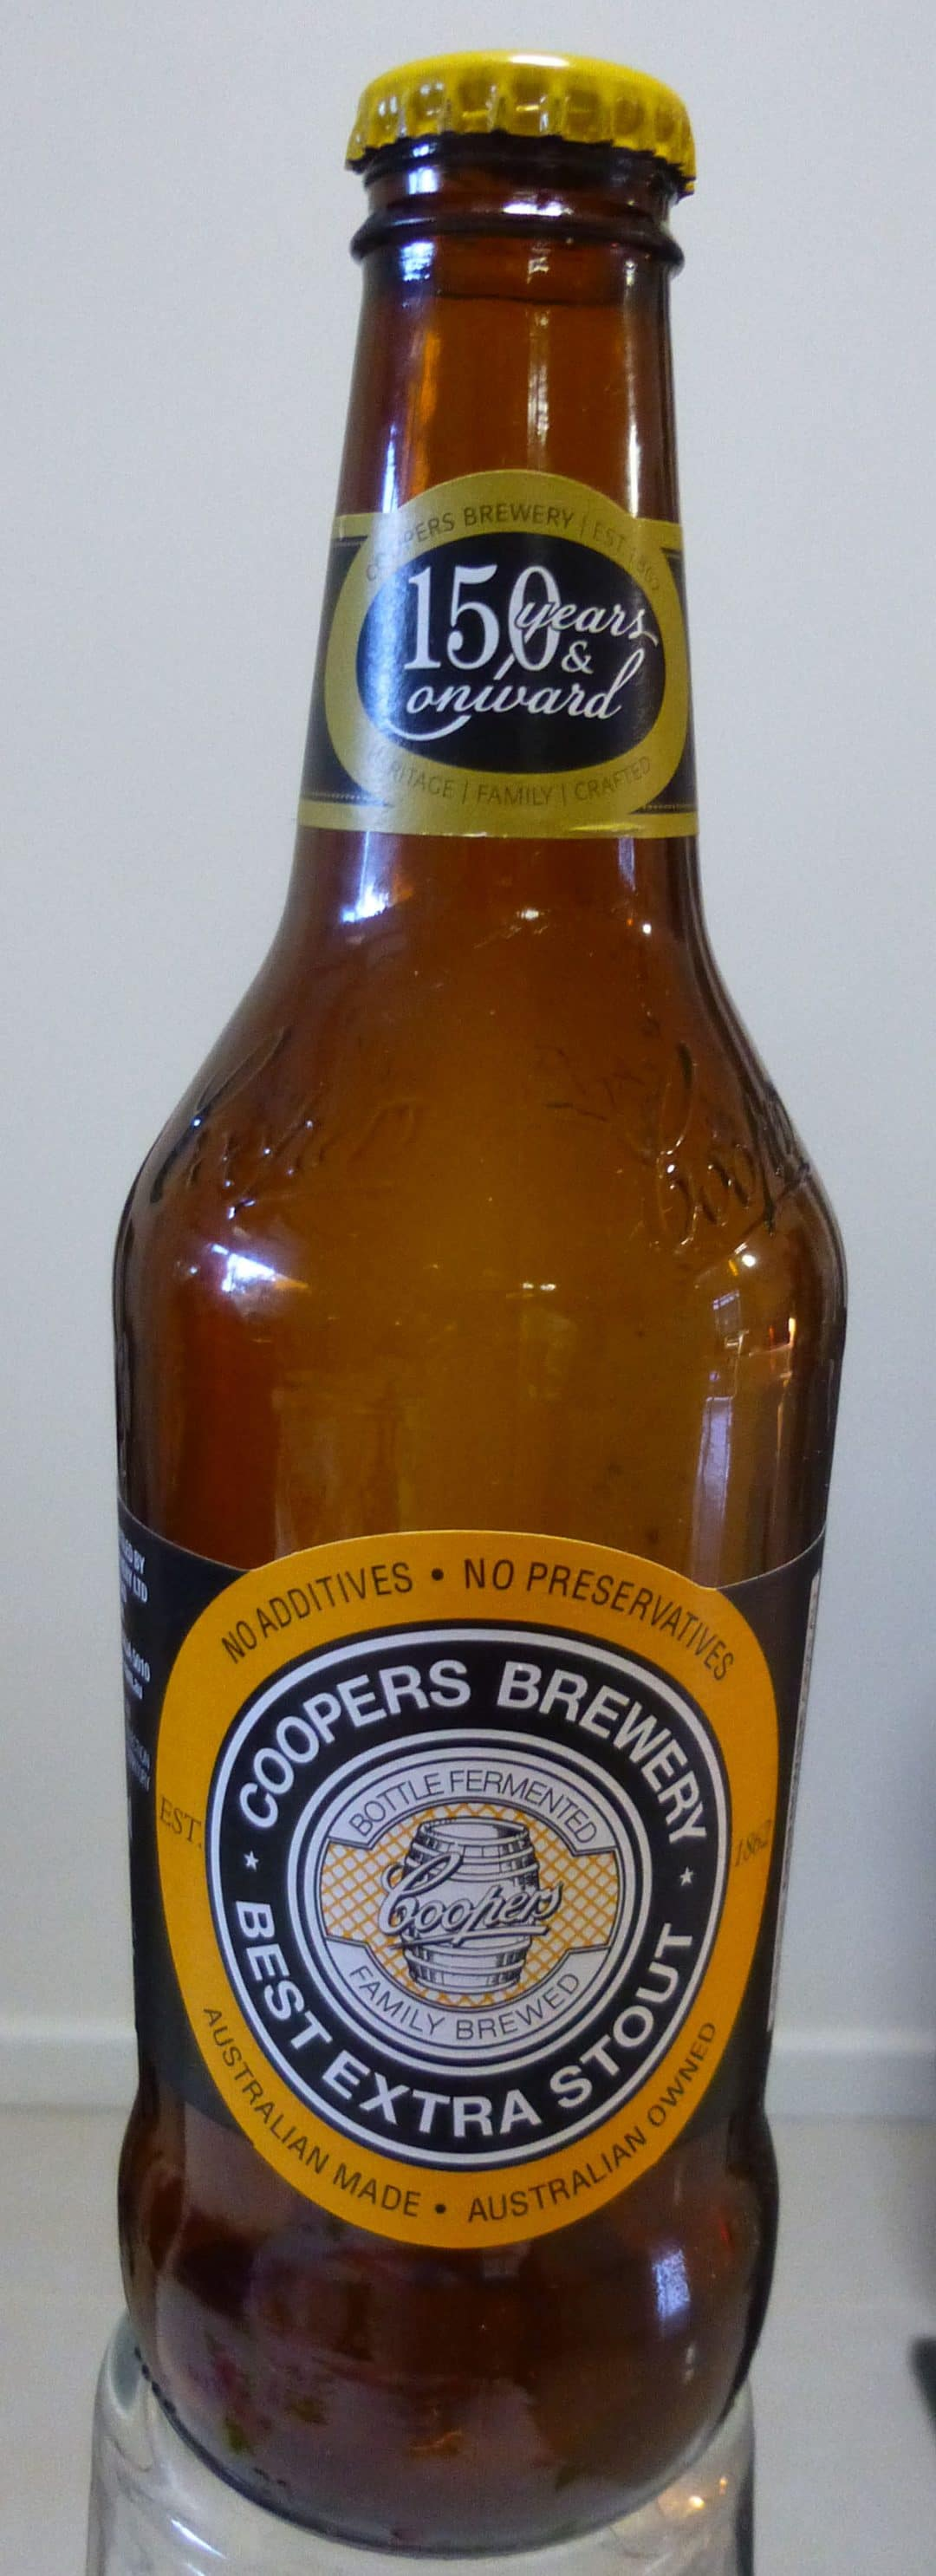 Coopers Best Extra Stout Beer